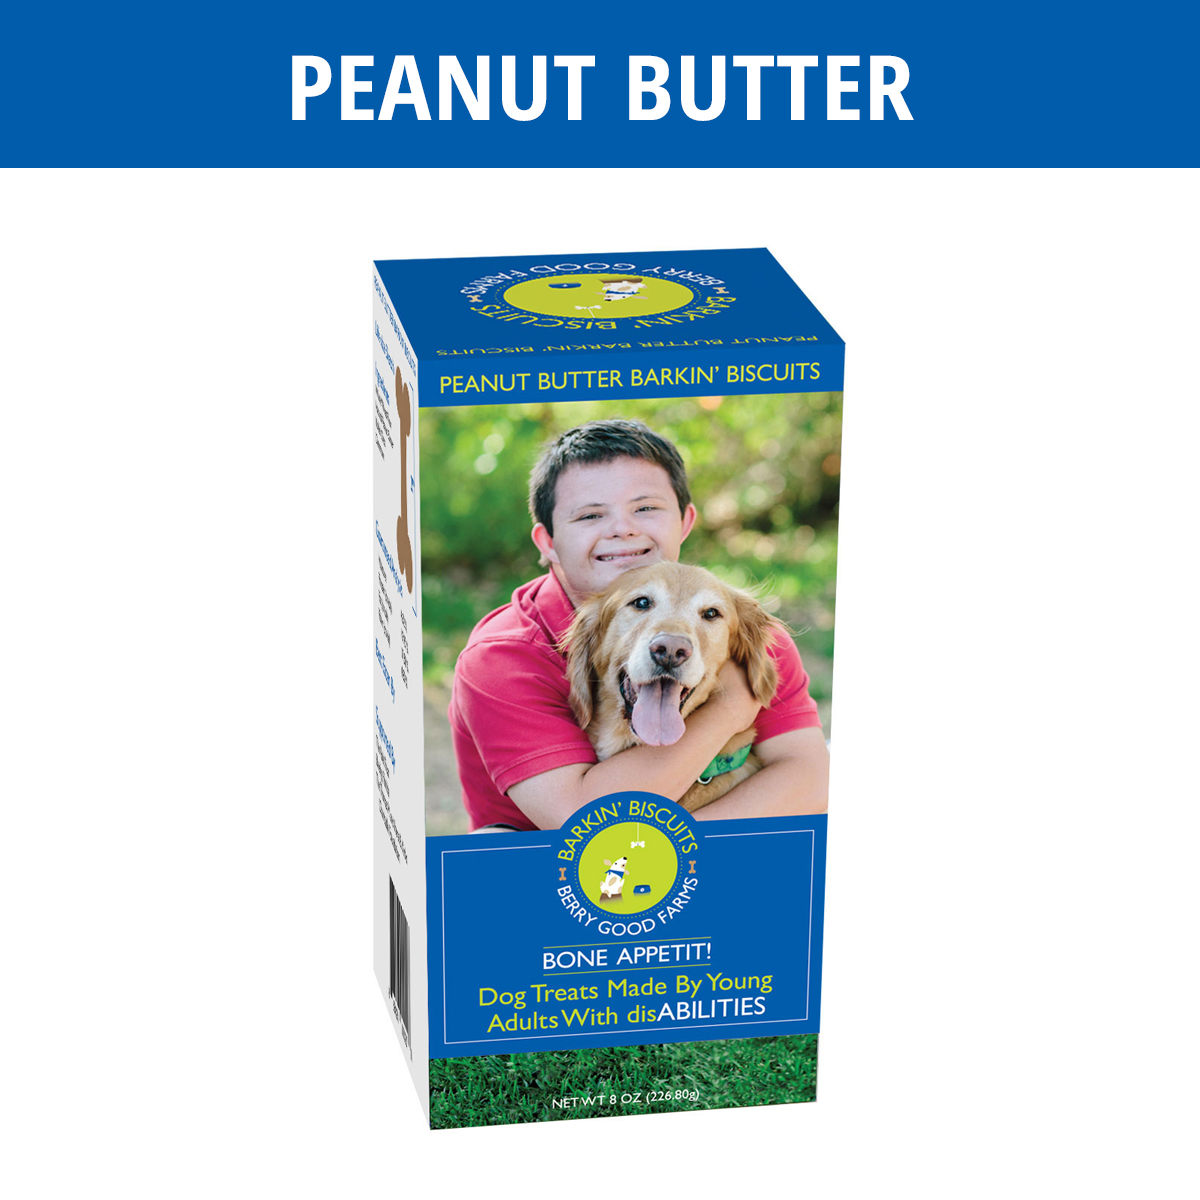 Peanut Butter Barkin Biscuits All Natural Dog Treats